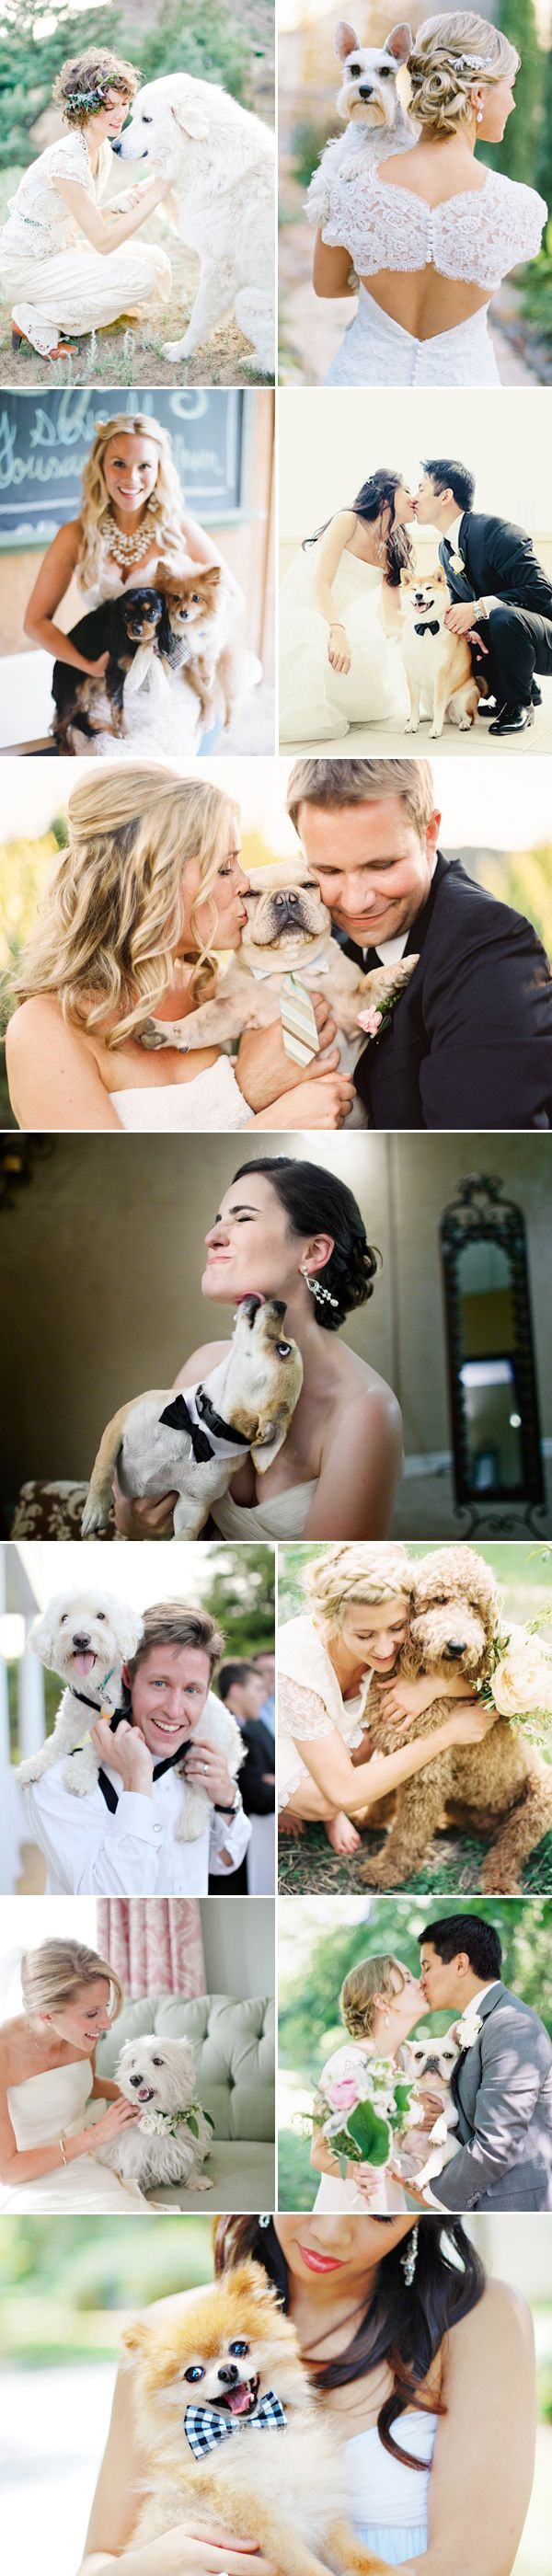 Para finalizer el día con una sonrisa, nada mejor de la compañía de tu mejor amigo! #Dogs @Wedding Sophisticate #melinarojasdeco 27 Adorable Wedding Dogs - so much love